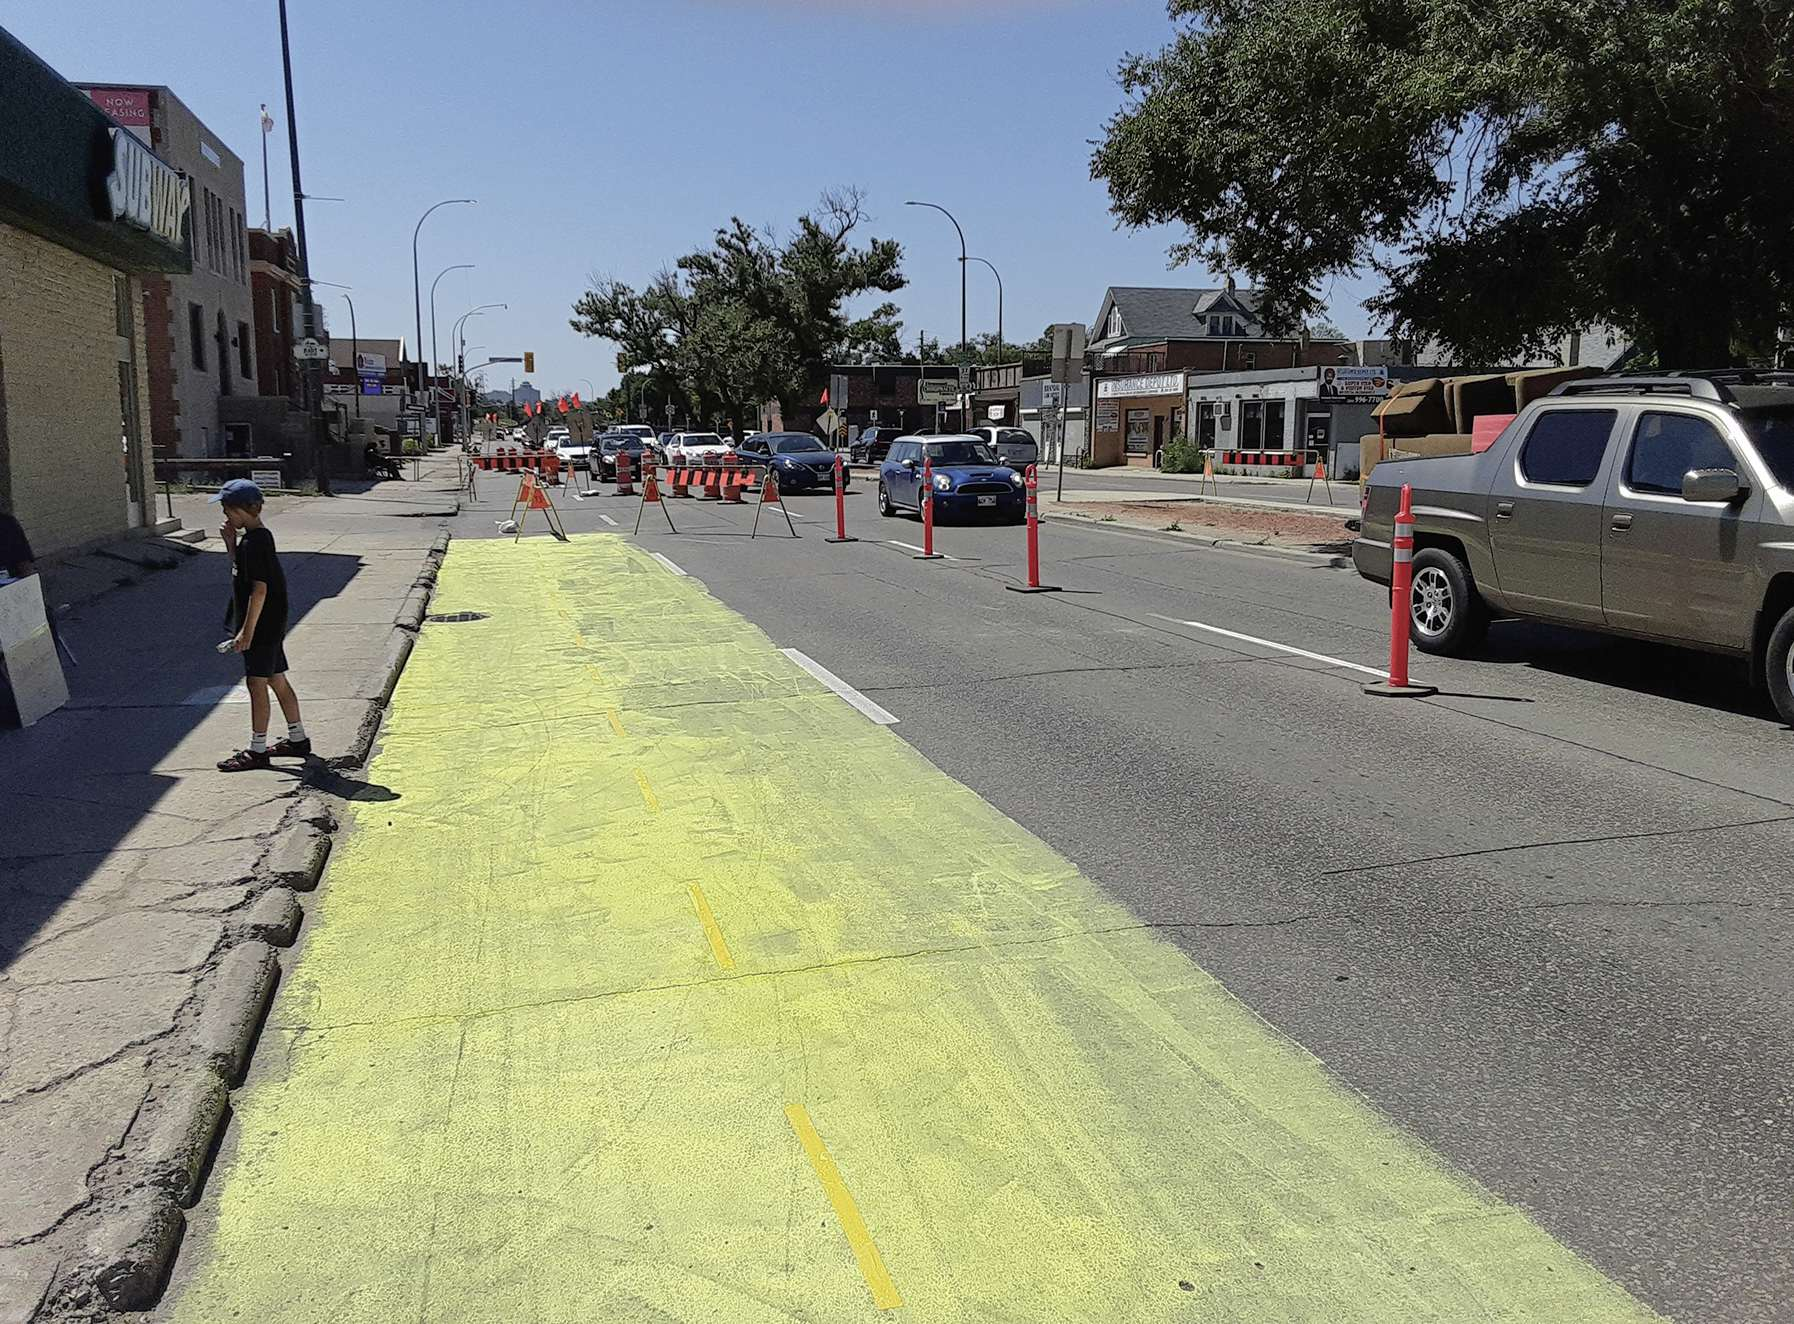 A temporary bike lane on northbound Henderson Highway would allow cyclists to feel safe enough to stay off sidewalks, according to area business owner Michel Durand-Wood.